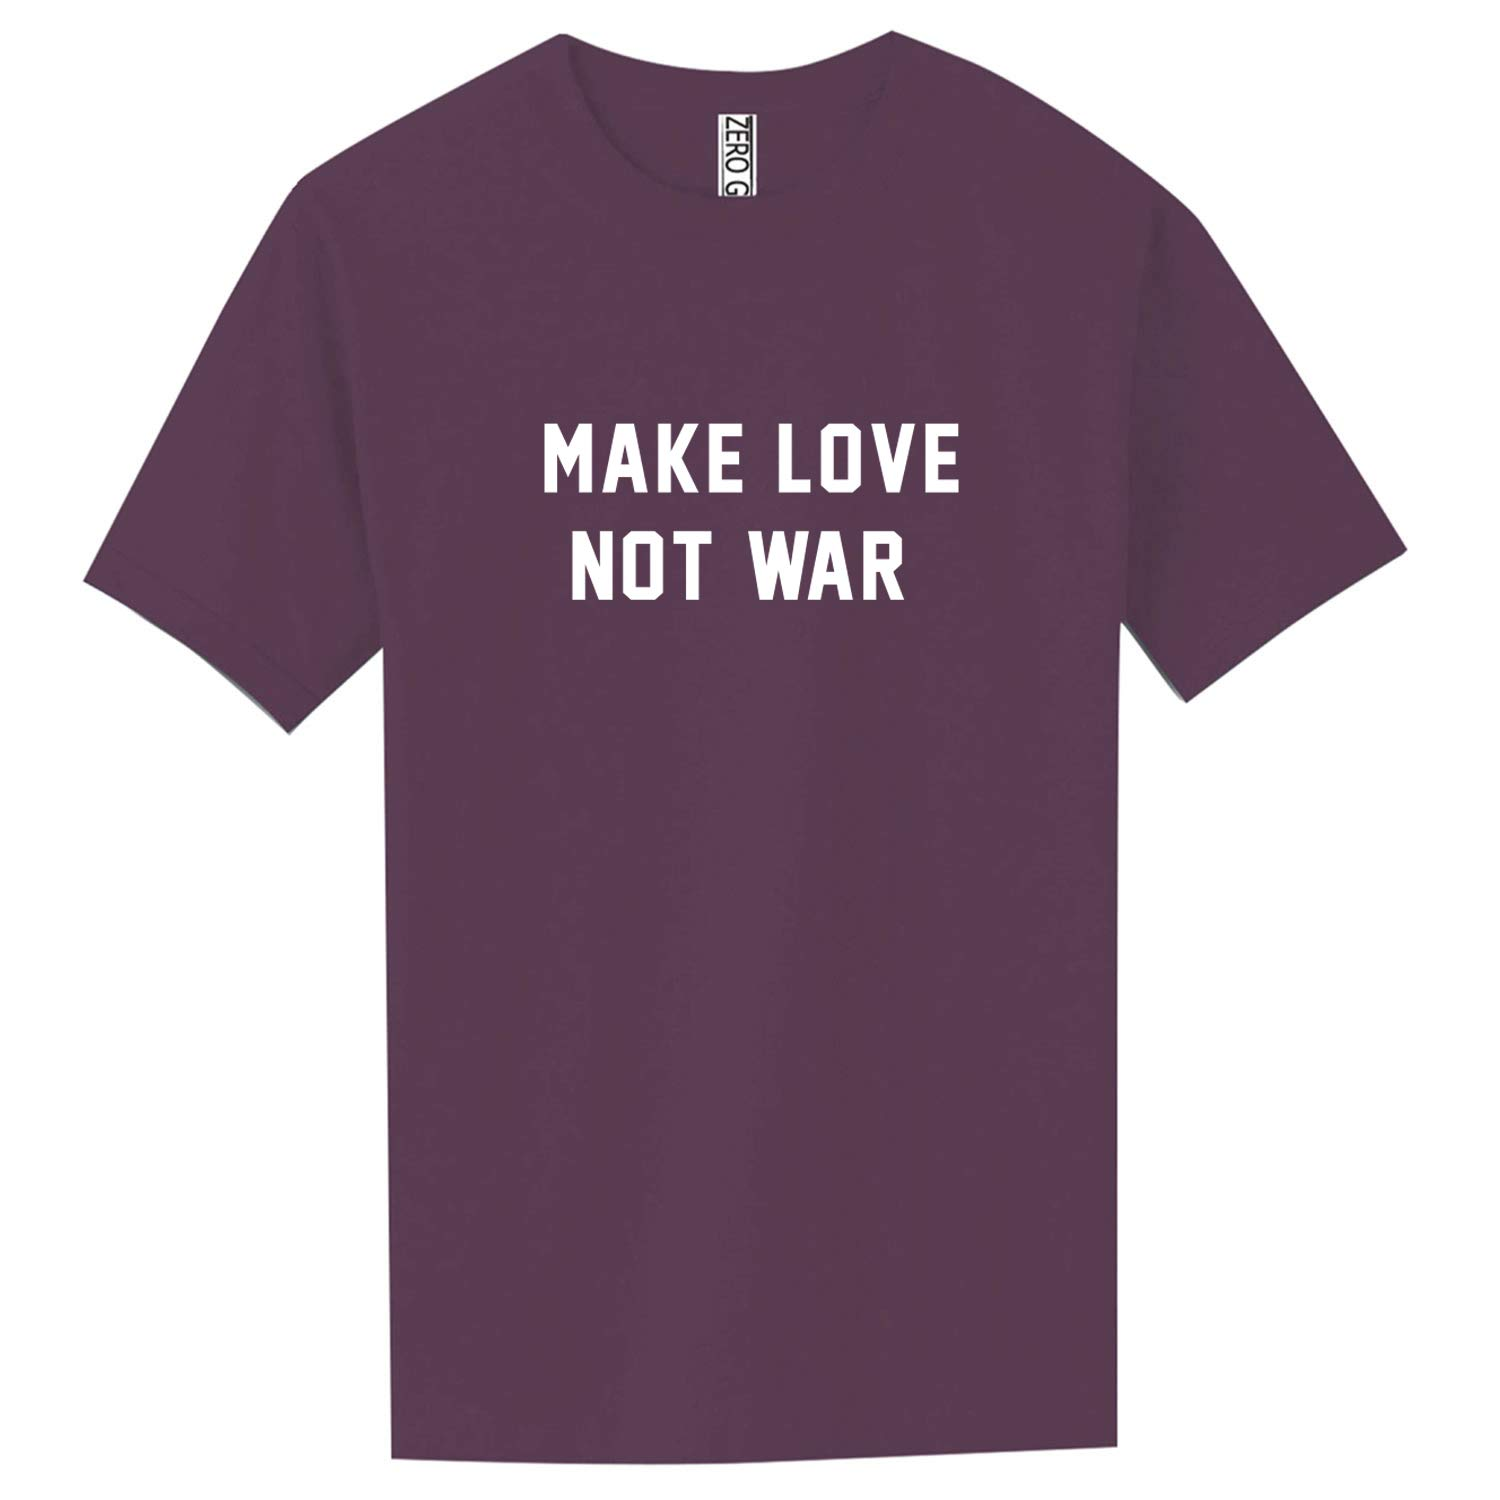 Make Love NOT WAR Adult Pigment Dye Short Sleeve in Eggplant - XX-Large